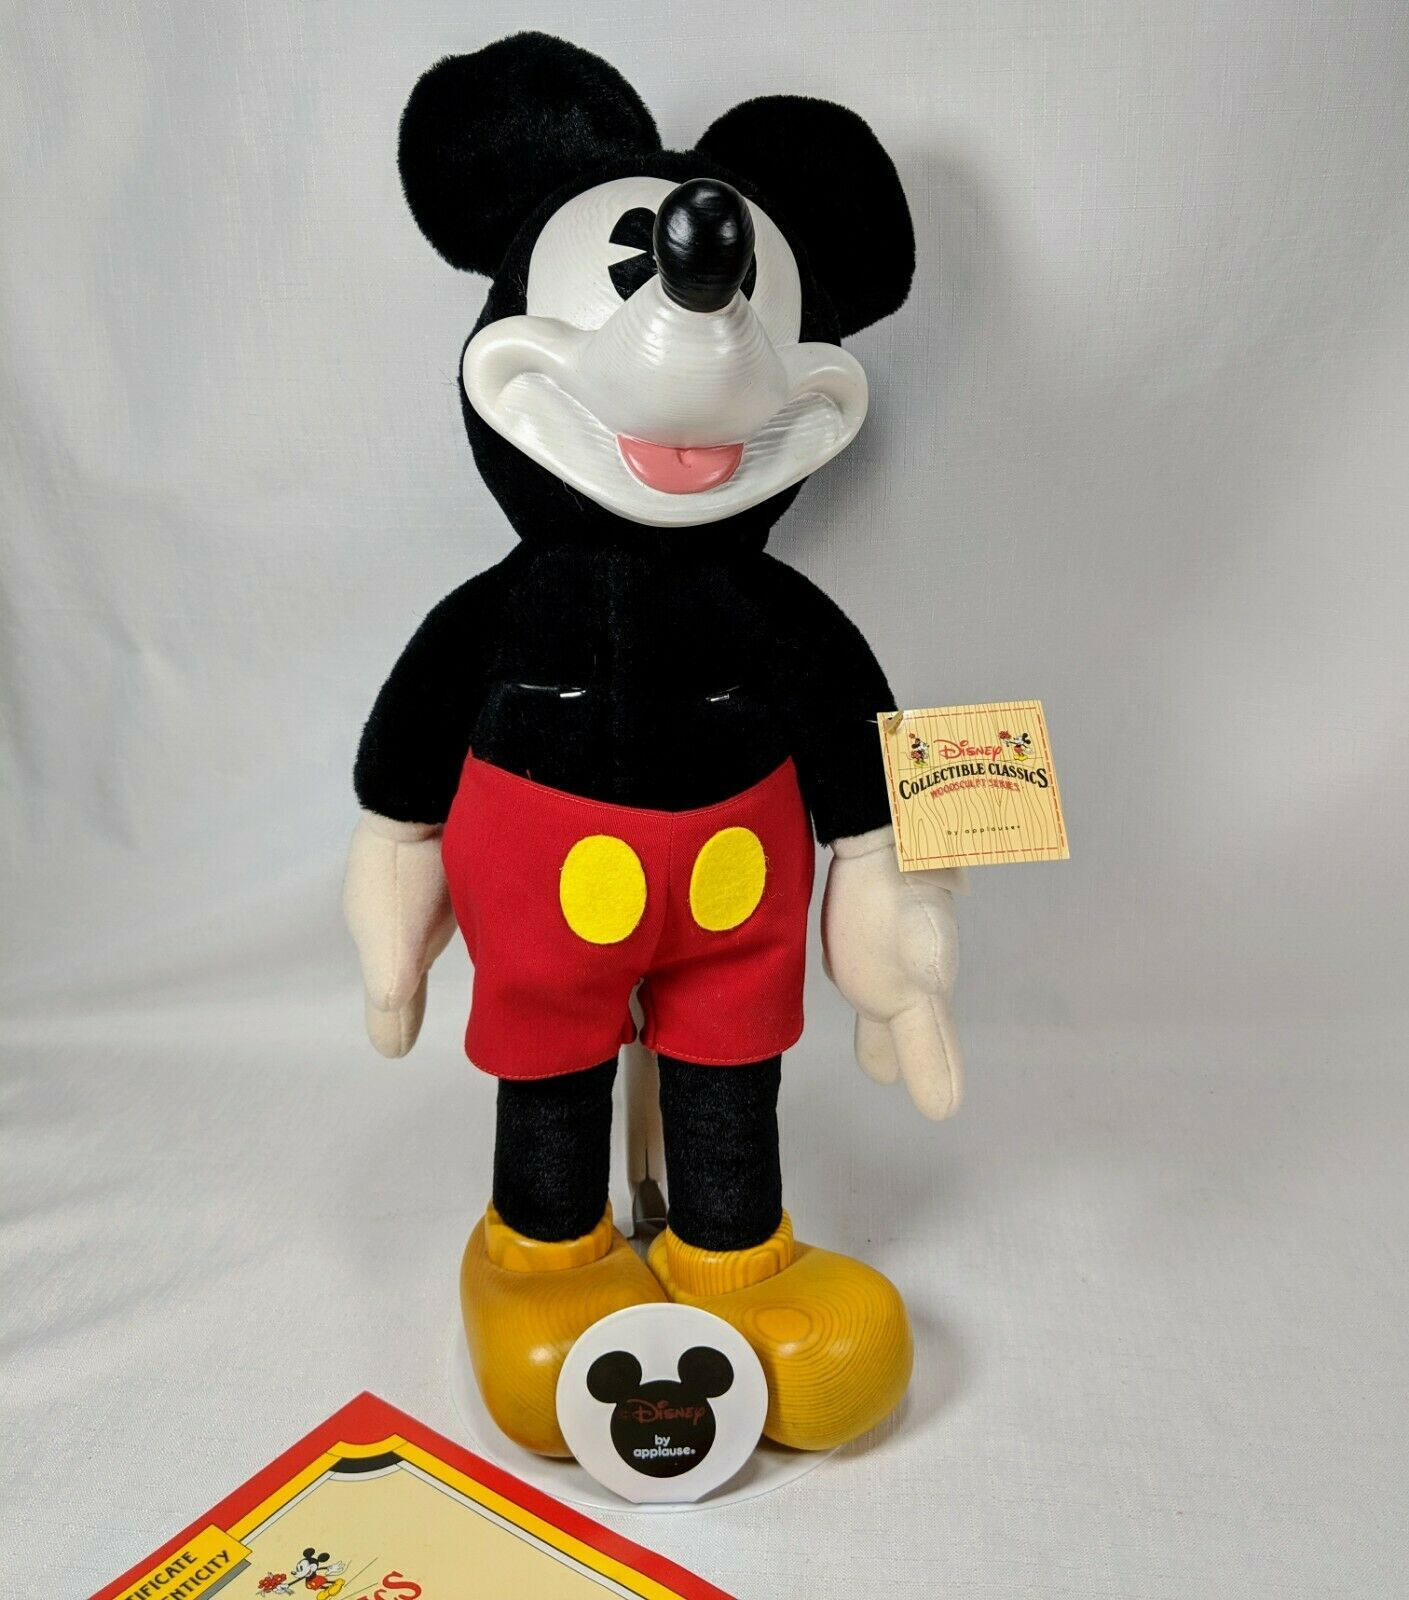 Disney Charlotte Clark Dolls Mickey Mouse Disney Collectible Classics 1930 1990